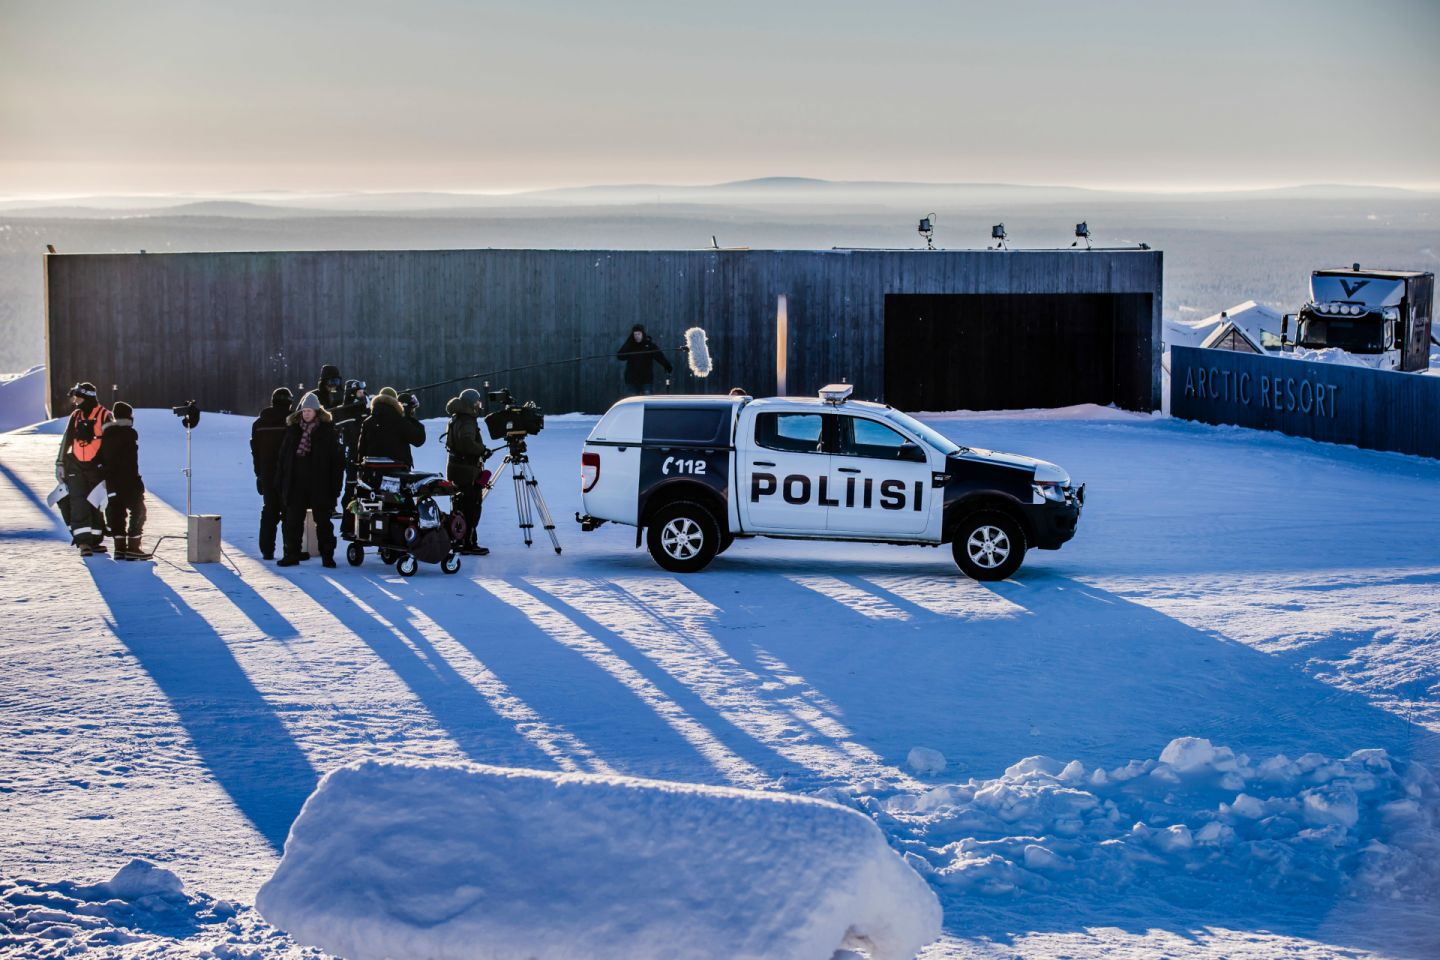 Behind the scenes of Arctic Circle, filmed in northern Finland